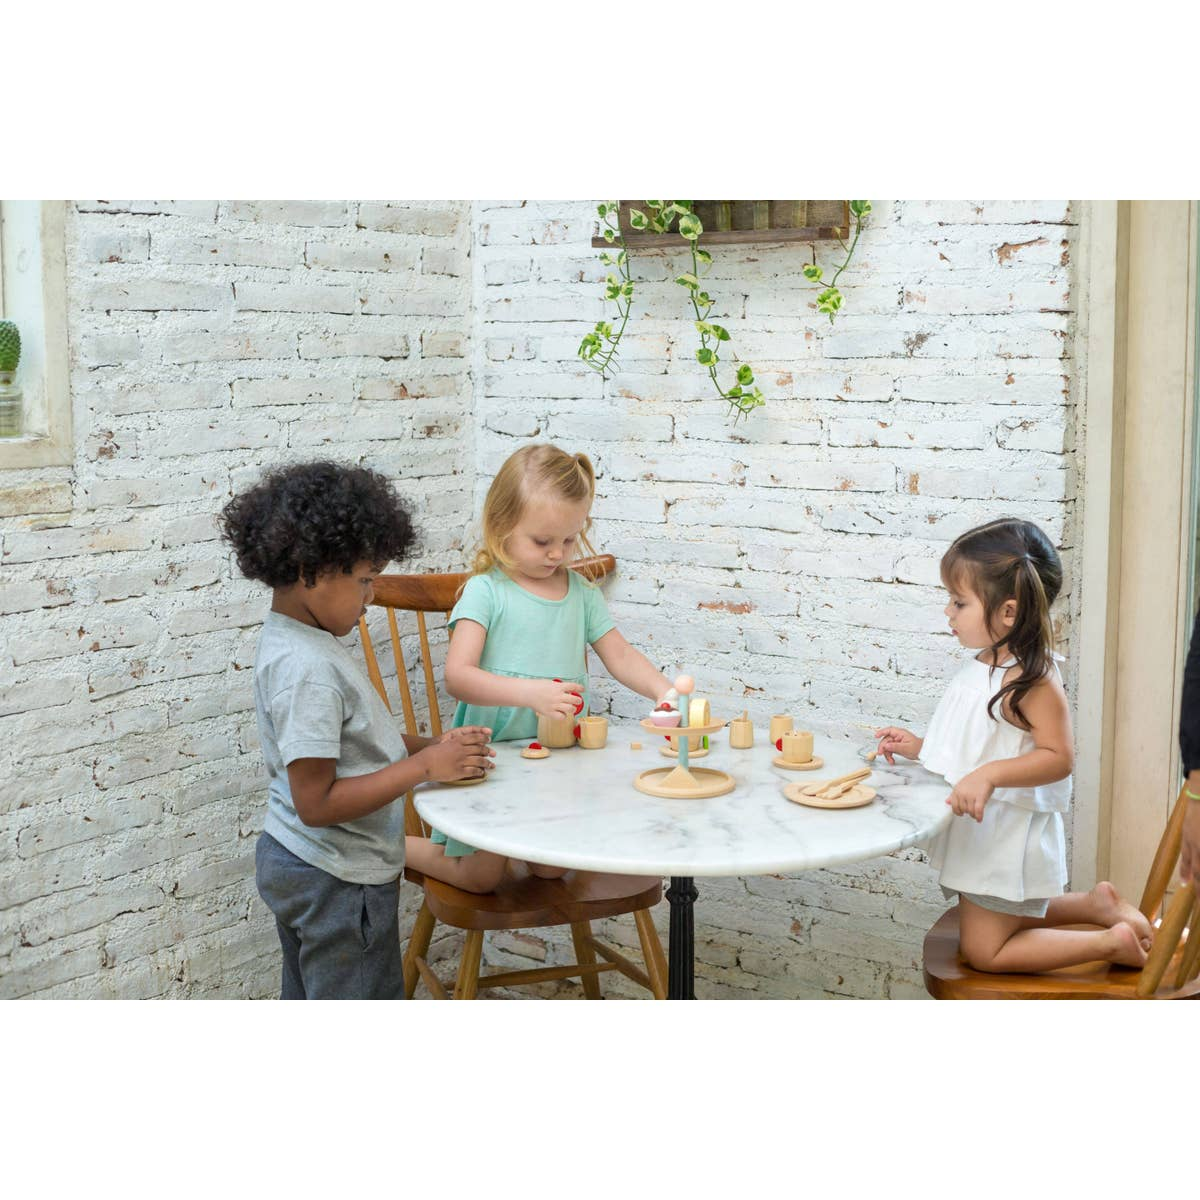 Bakery Stand Play Set